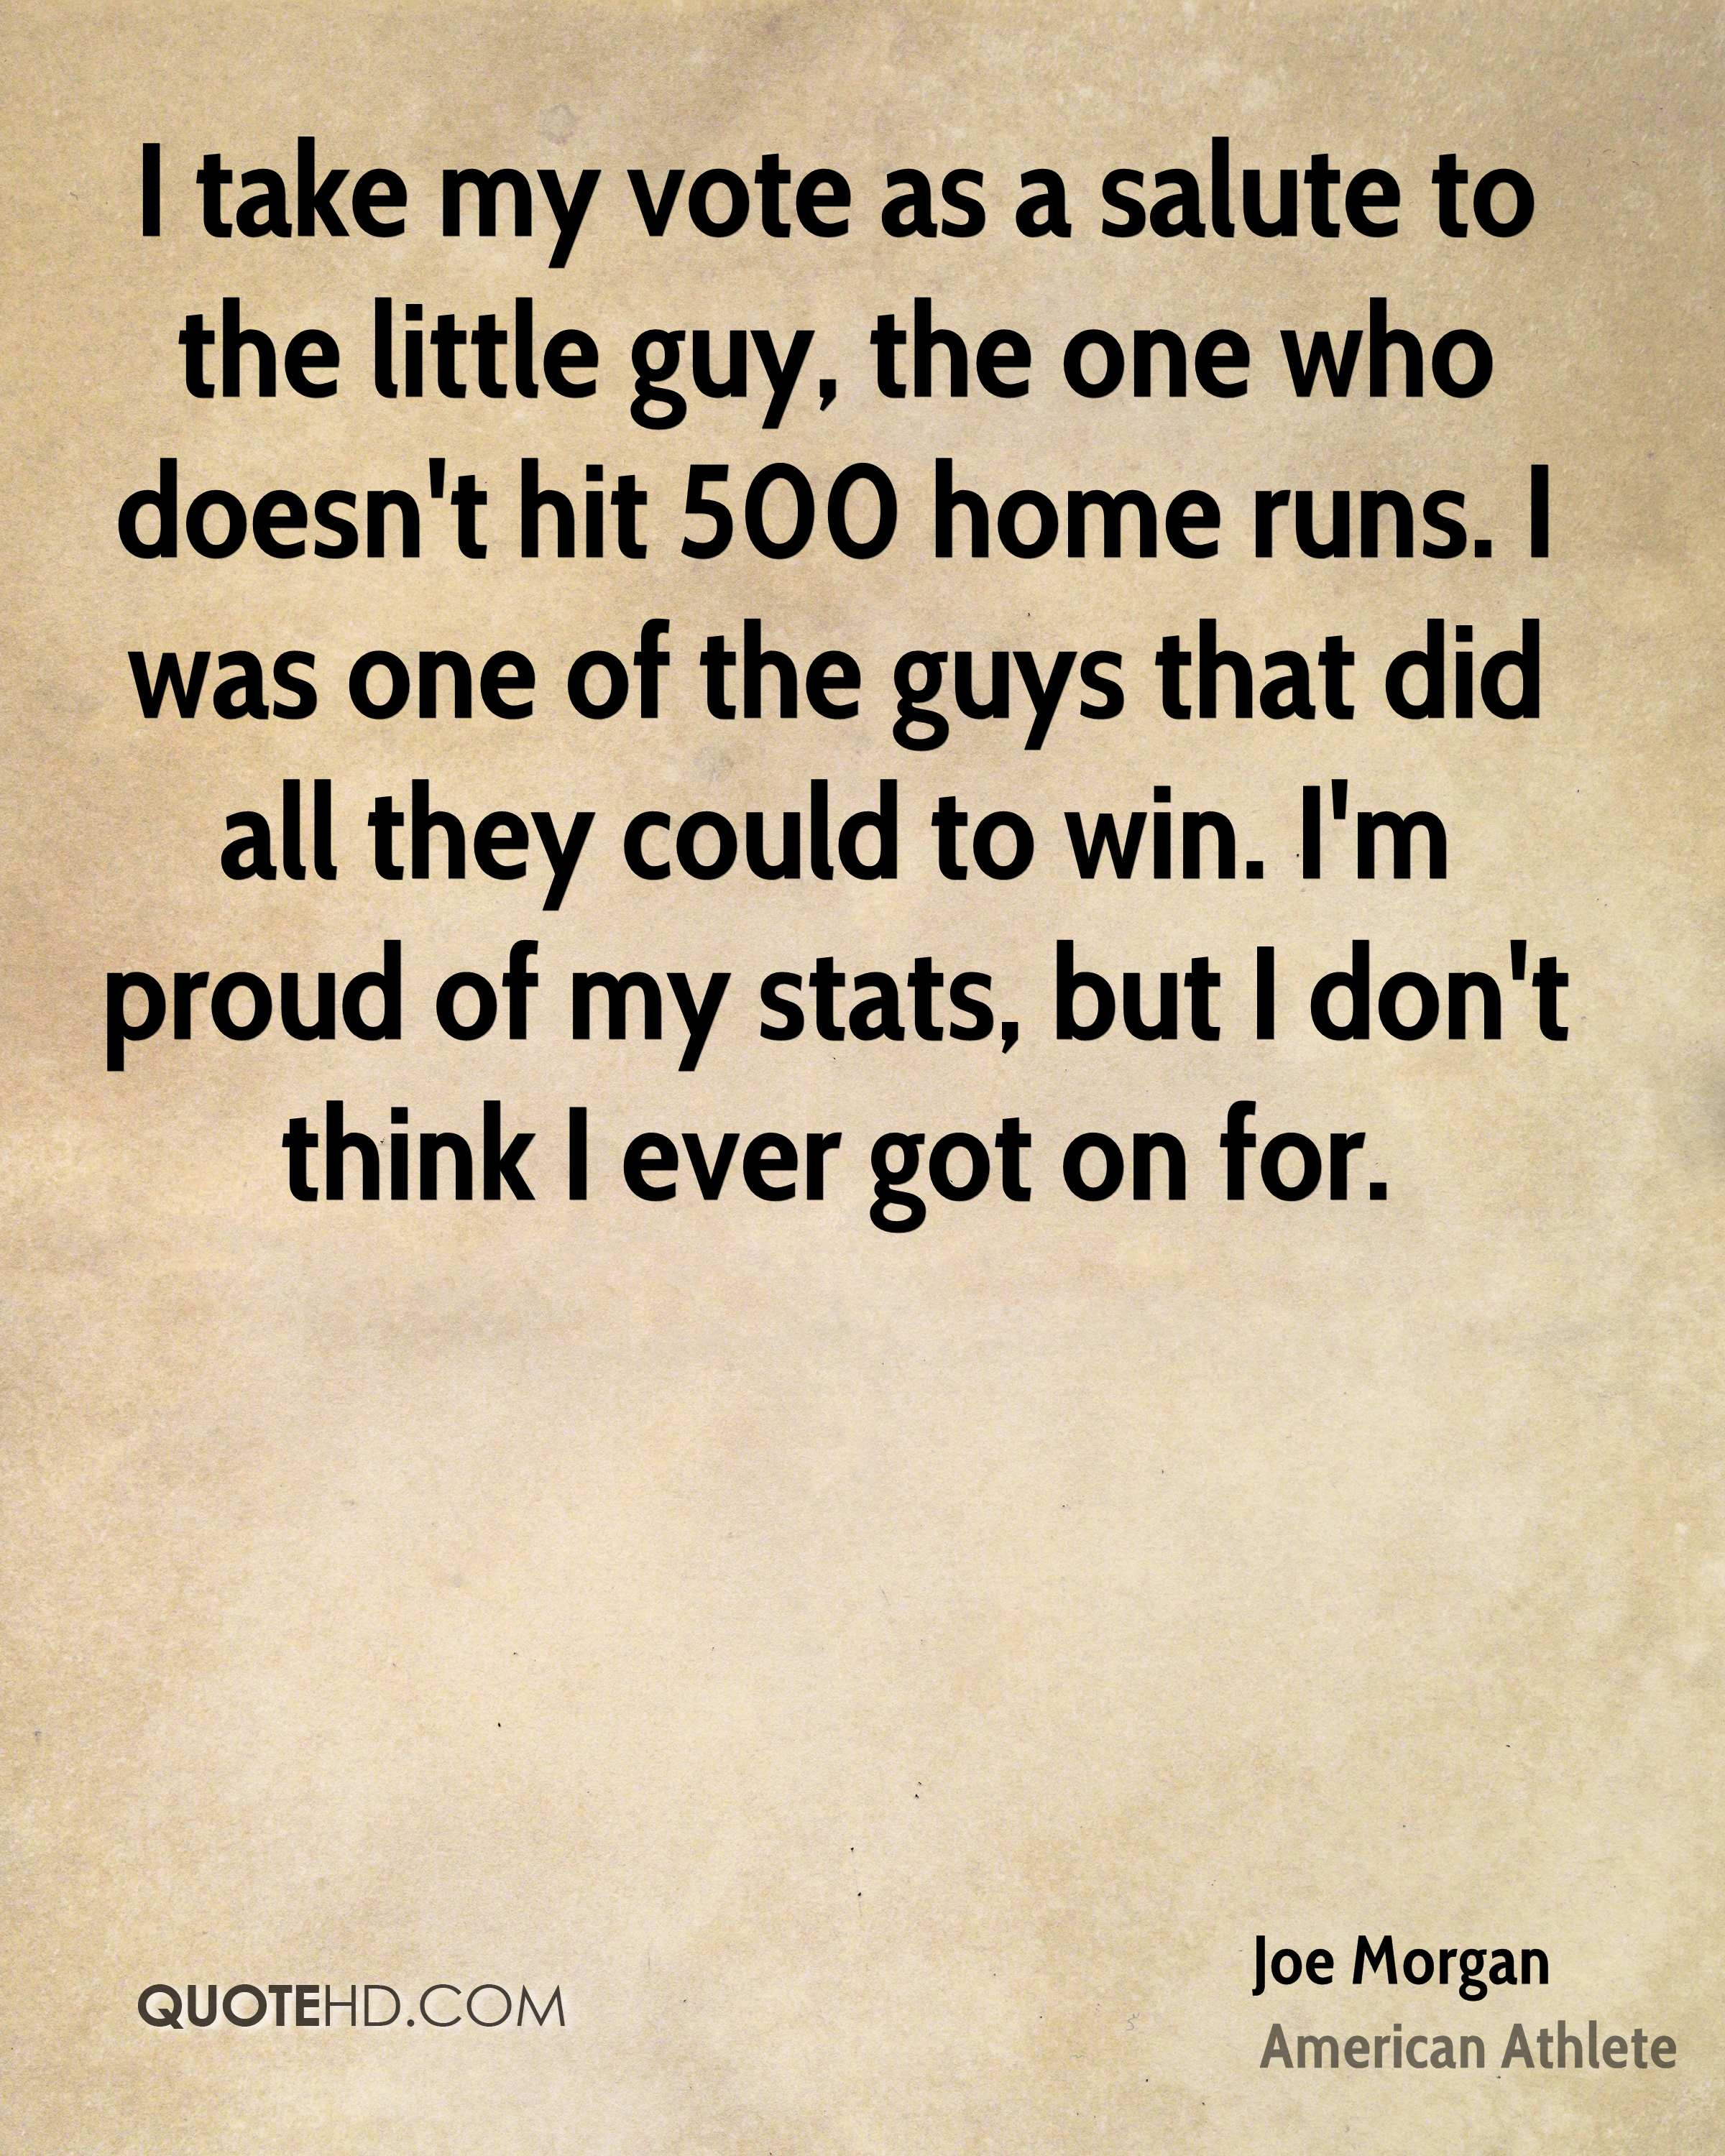 I take my vote as a salute to the little guy, the one who doesn't hit 500 home runs. I was one of the guys that did all they could to win. I'm proud of my stats, but I don't think I ever got on for.